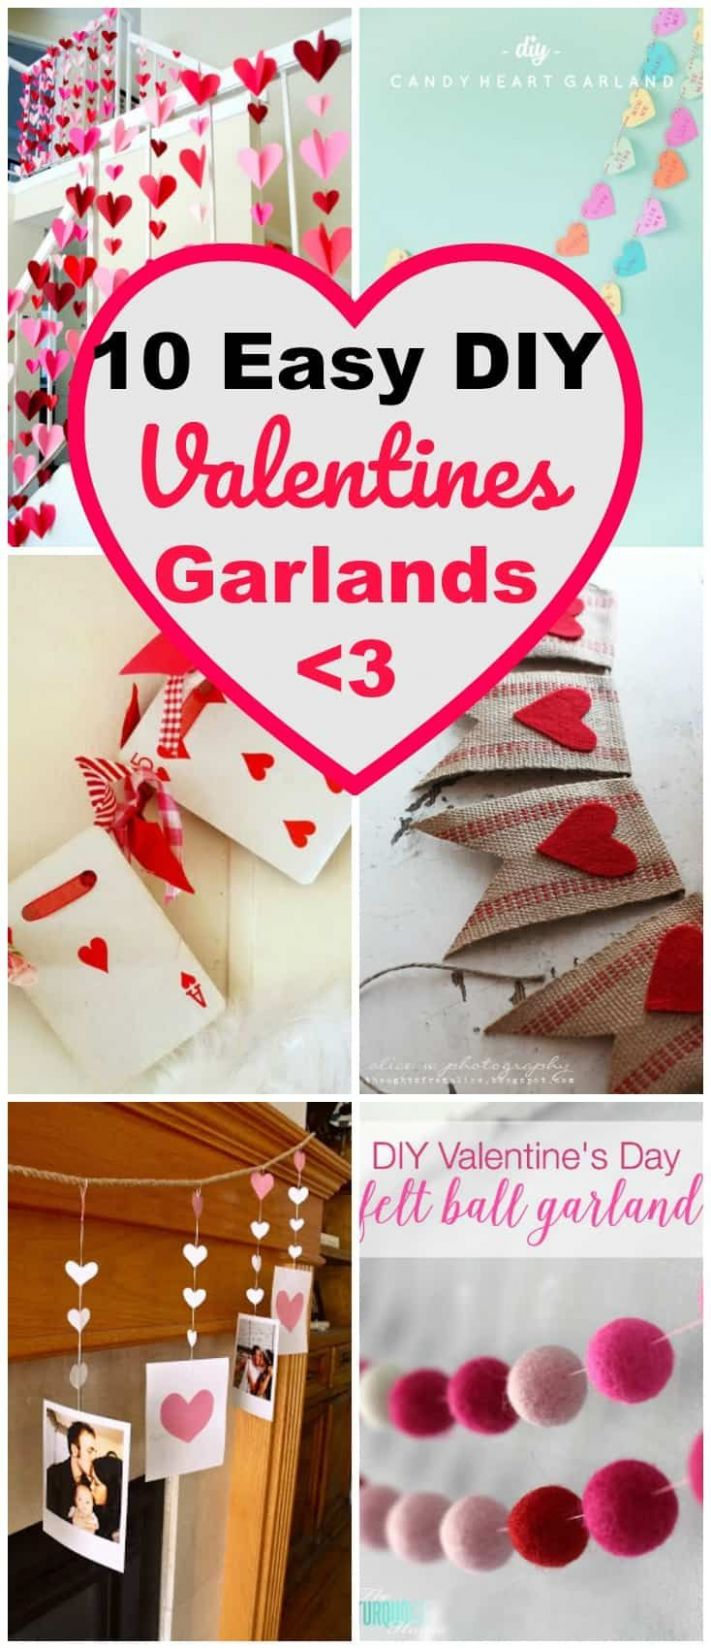 Valentines Day DIY Garlands ~ 11 Easy Garland Wall Art Ideas for ..